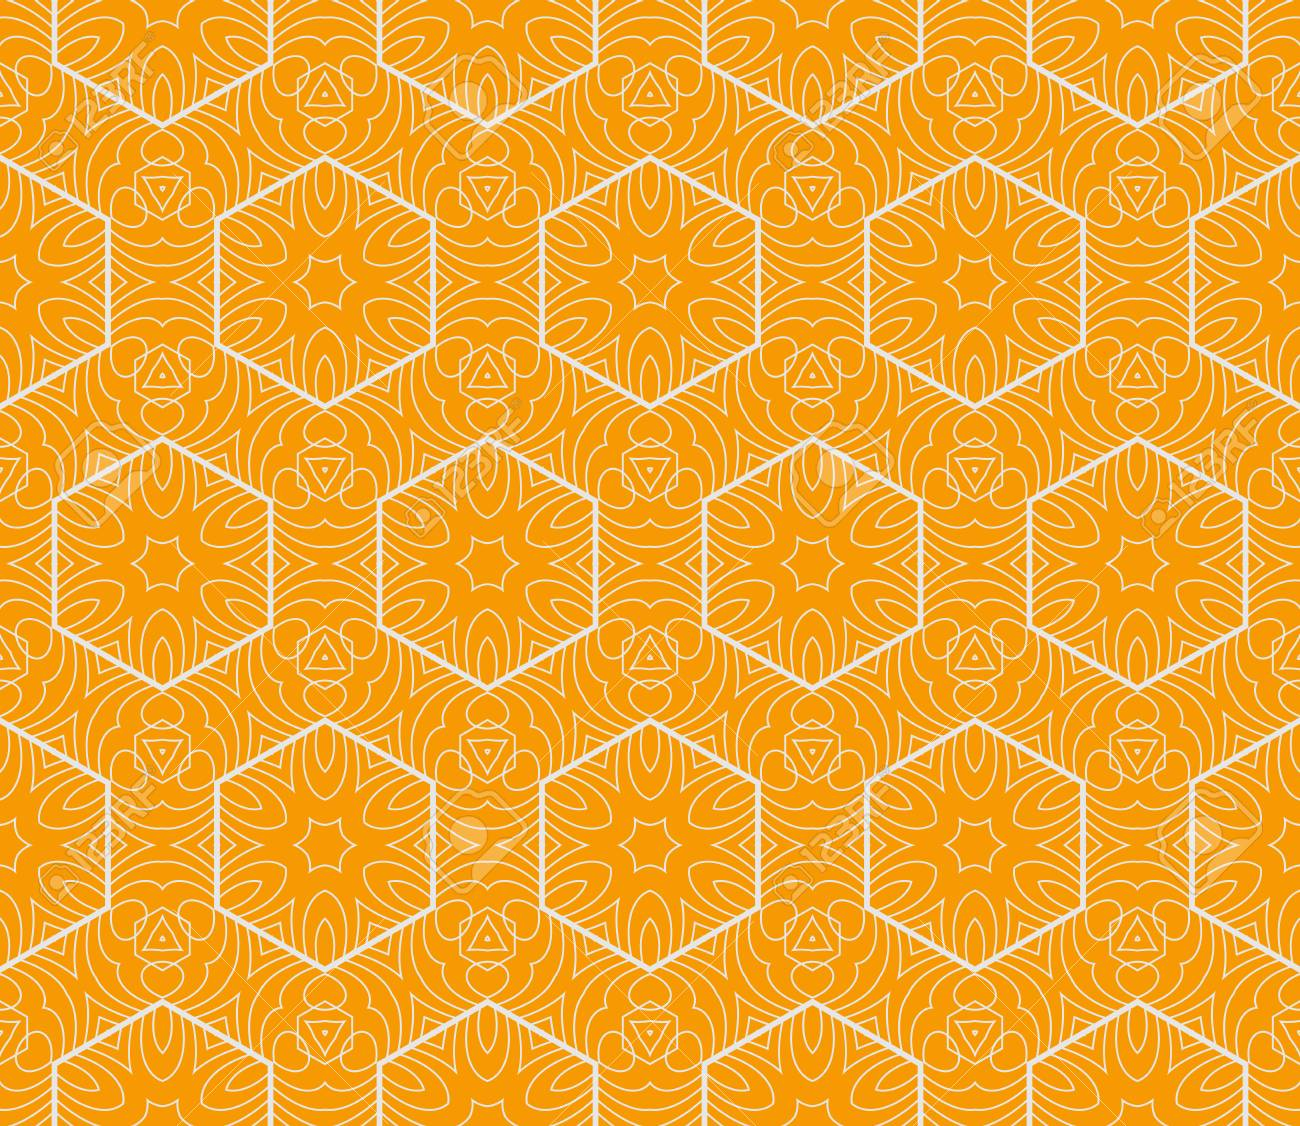 98250826 vector geometric seamless pattern floral style orange color for printing on fabric paper for scrapbo